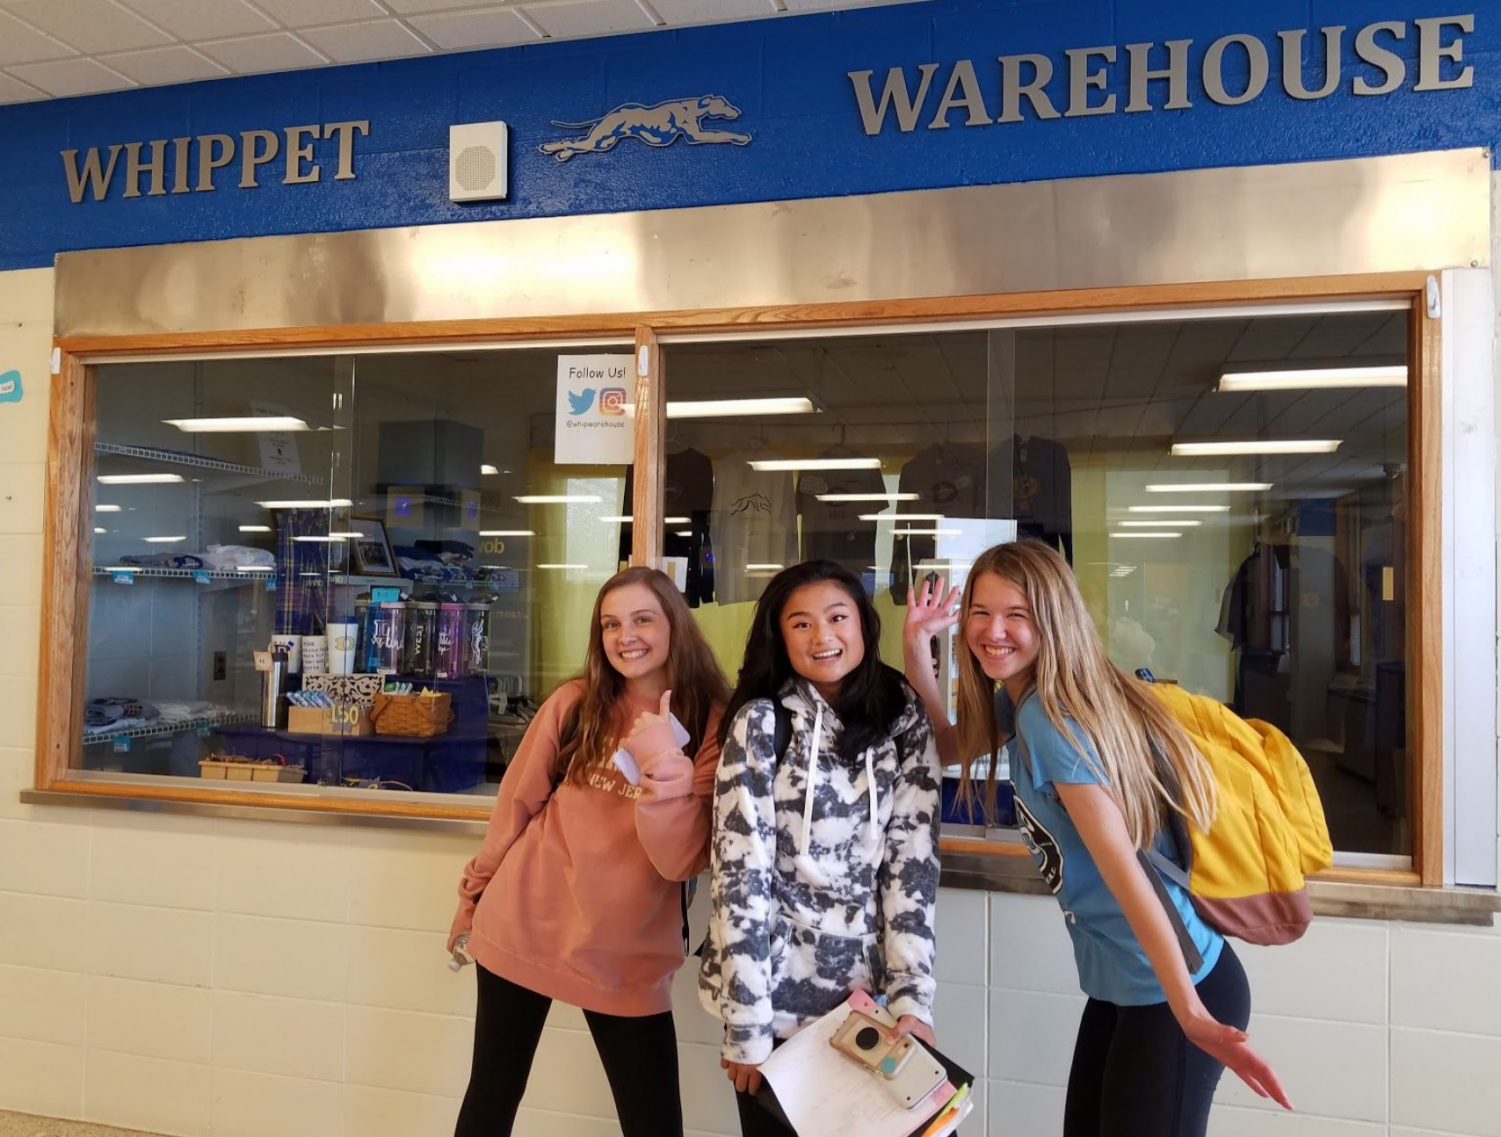 We love The Whippet Warehouse! Juniors Leah McHoul, Rosie Byrne, and Leah Rogelstad strike a pose in front of West's newest business venture.